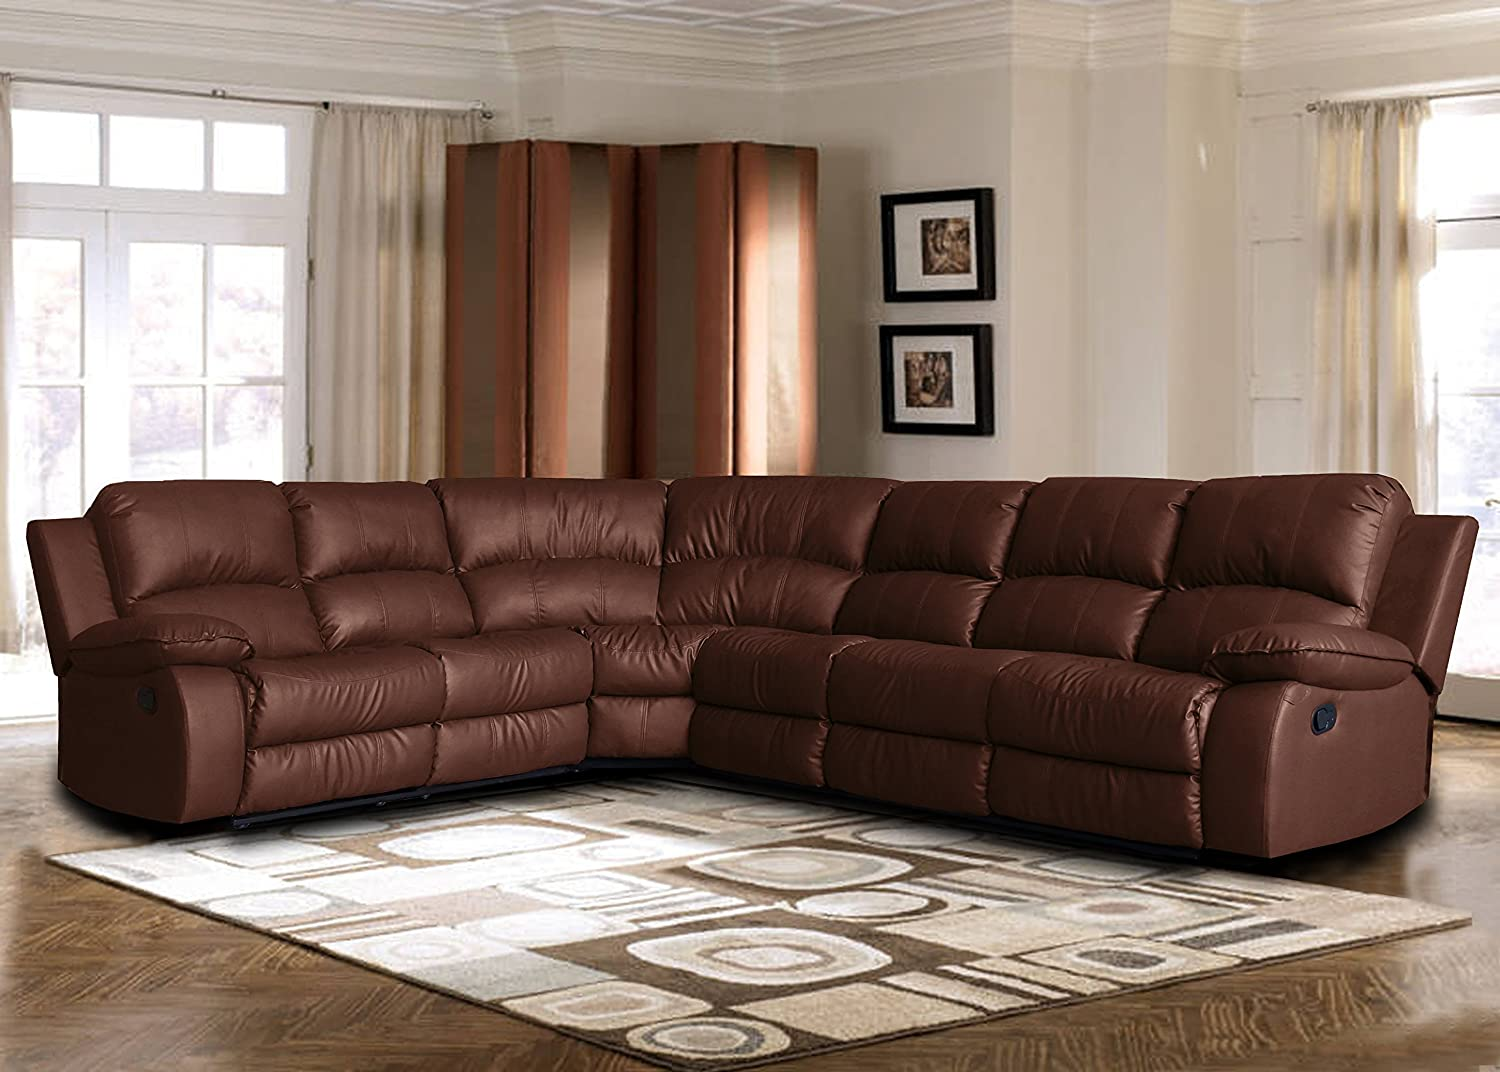 stg sectional collections sectionals in sofamania cheap vlv amanda modern velvet leather sofa black for blk sofas reclining large